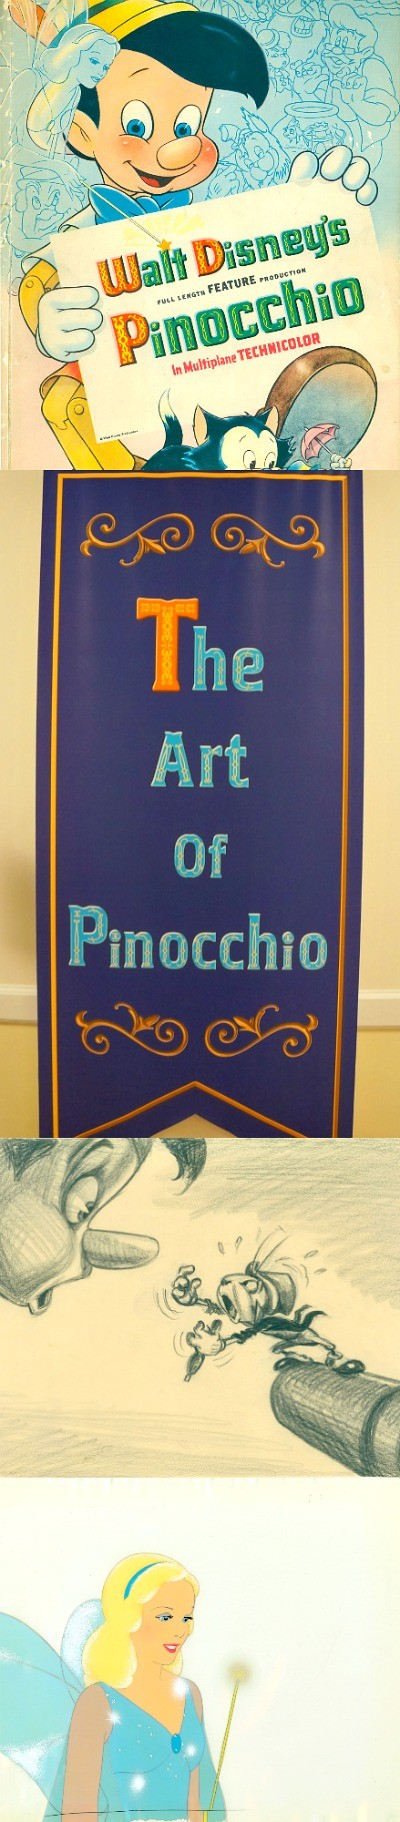 A Look At The Art of Pinocchio Exhibit at The Walt Disney Family Museum